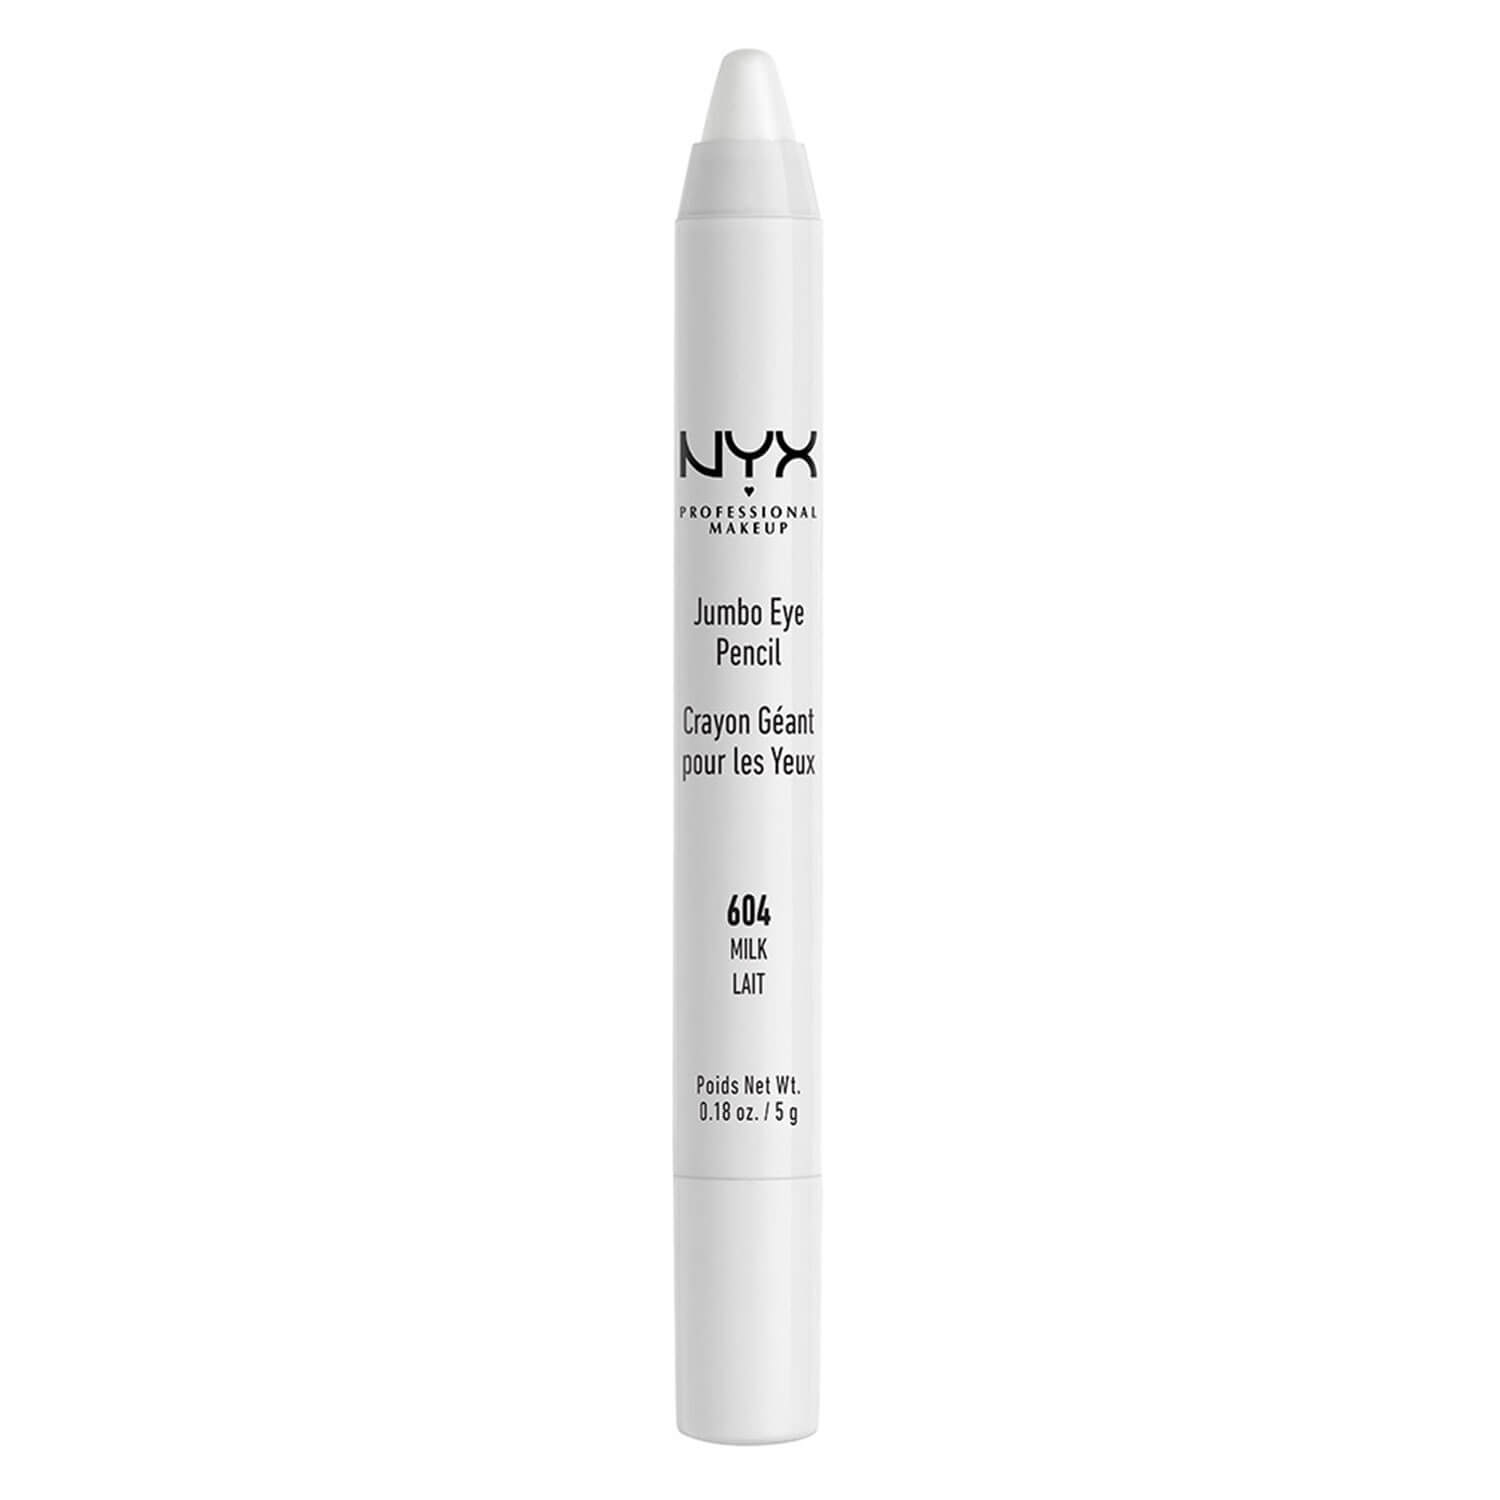 Jumbo Eye Pencil - Milk - 5g